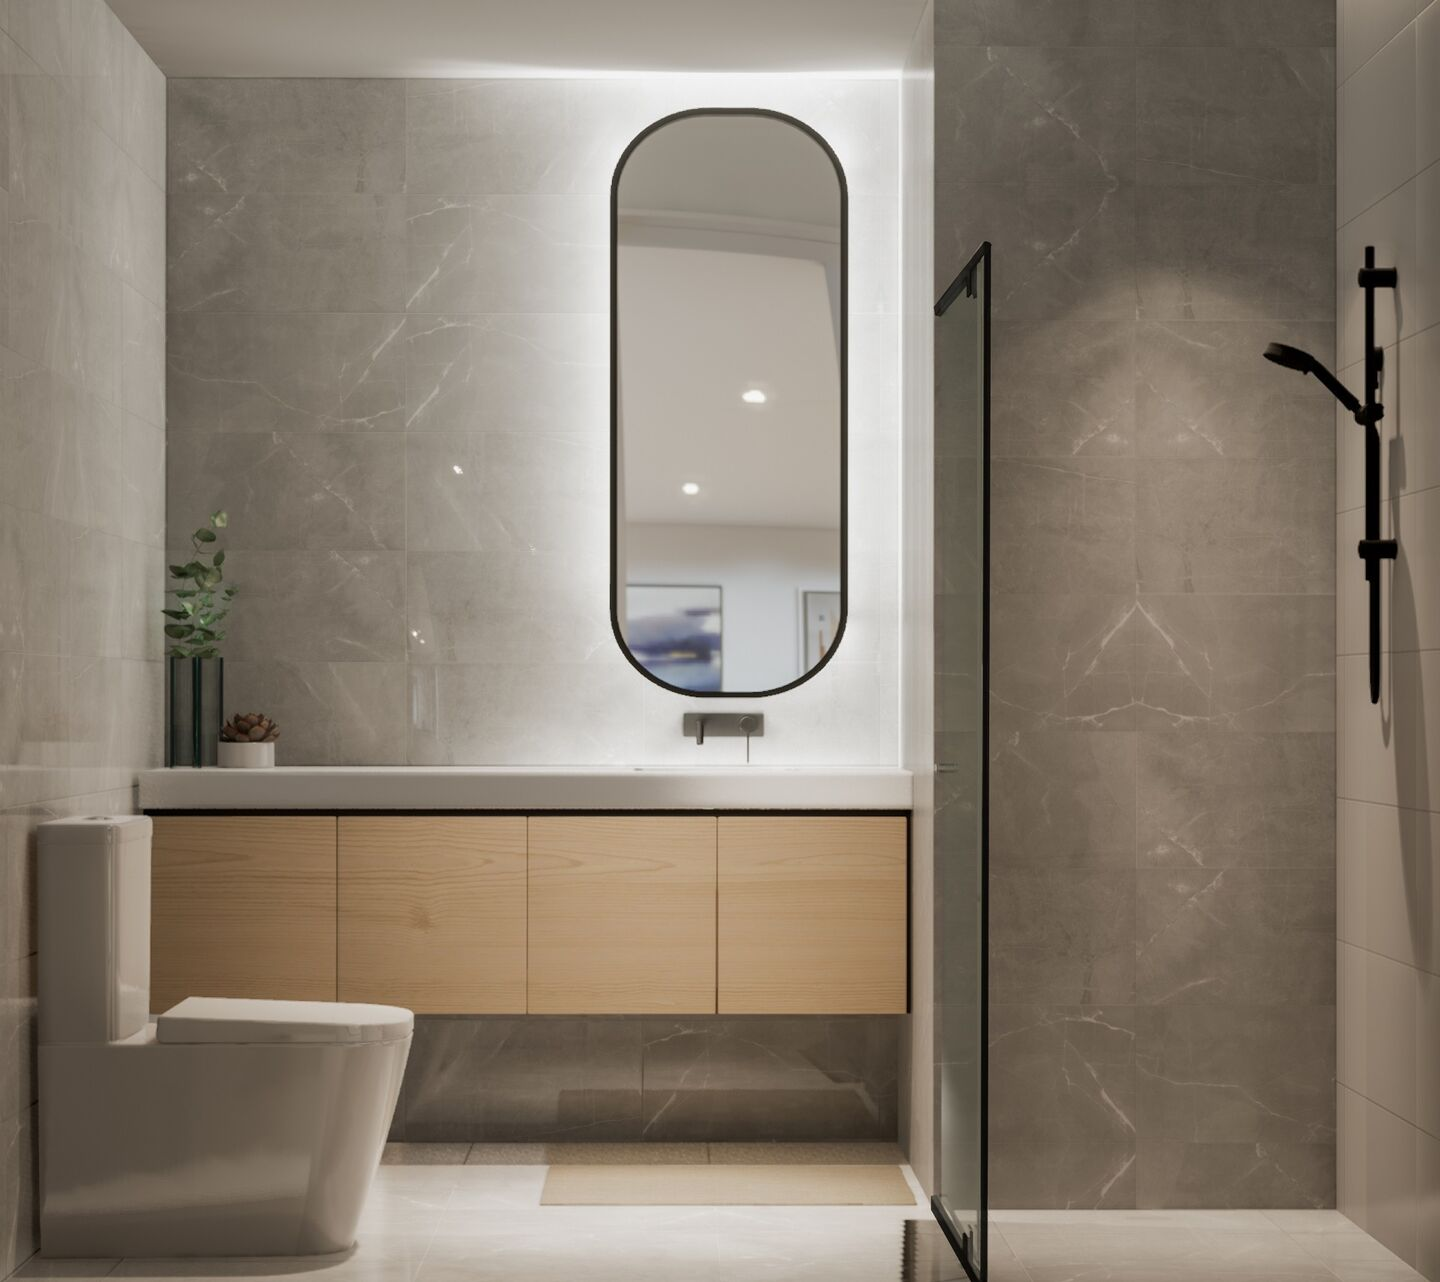 Henley Apartments Bathroom Medium Scheme